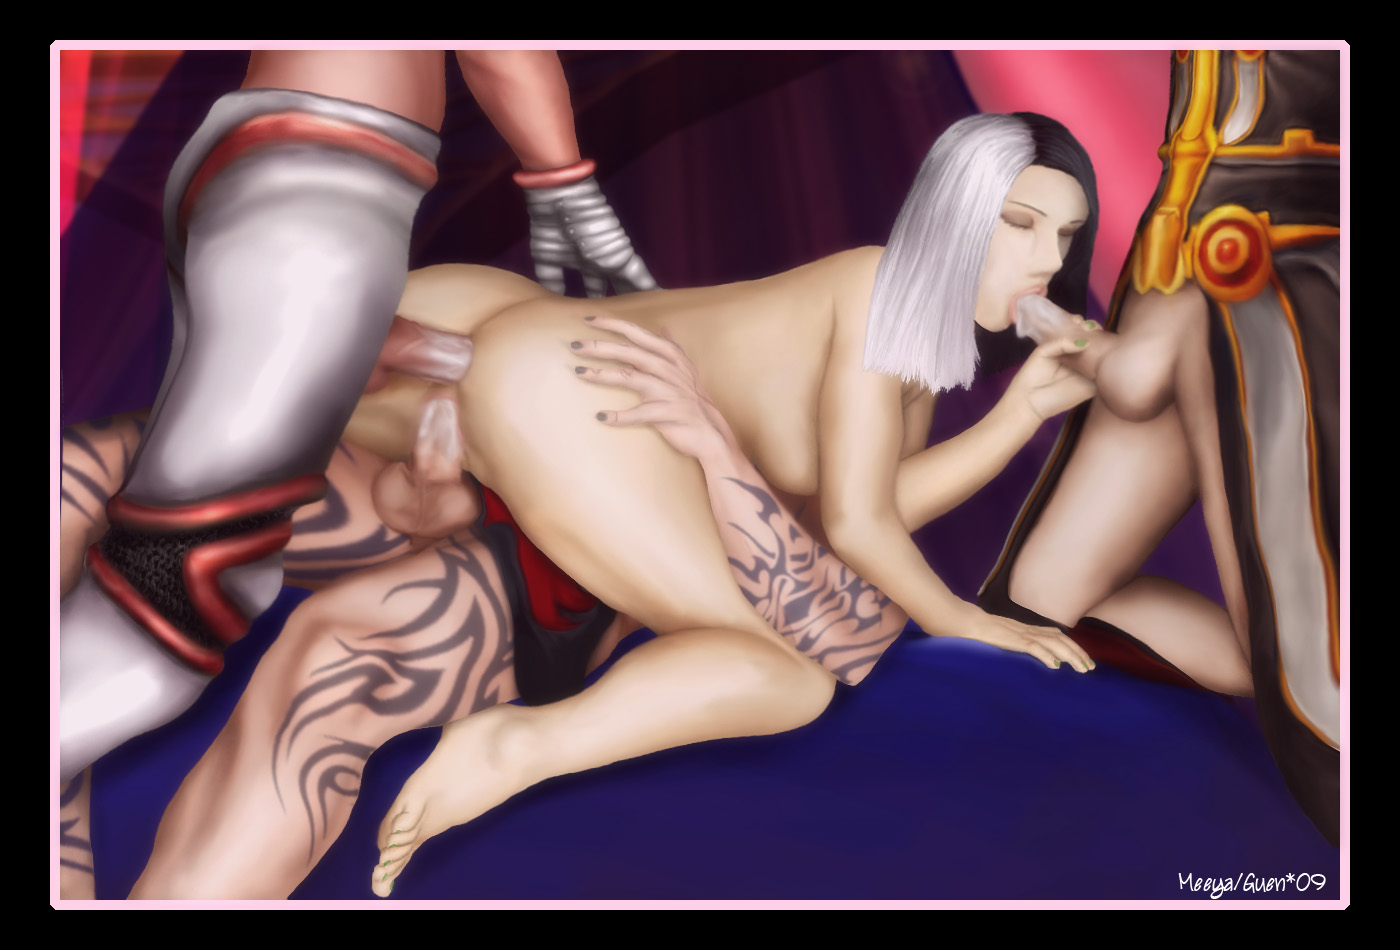 Lord of porncraft pornos bilder sexual gallery